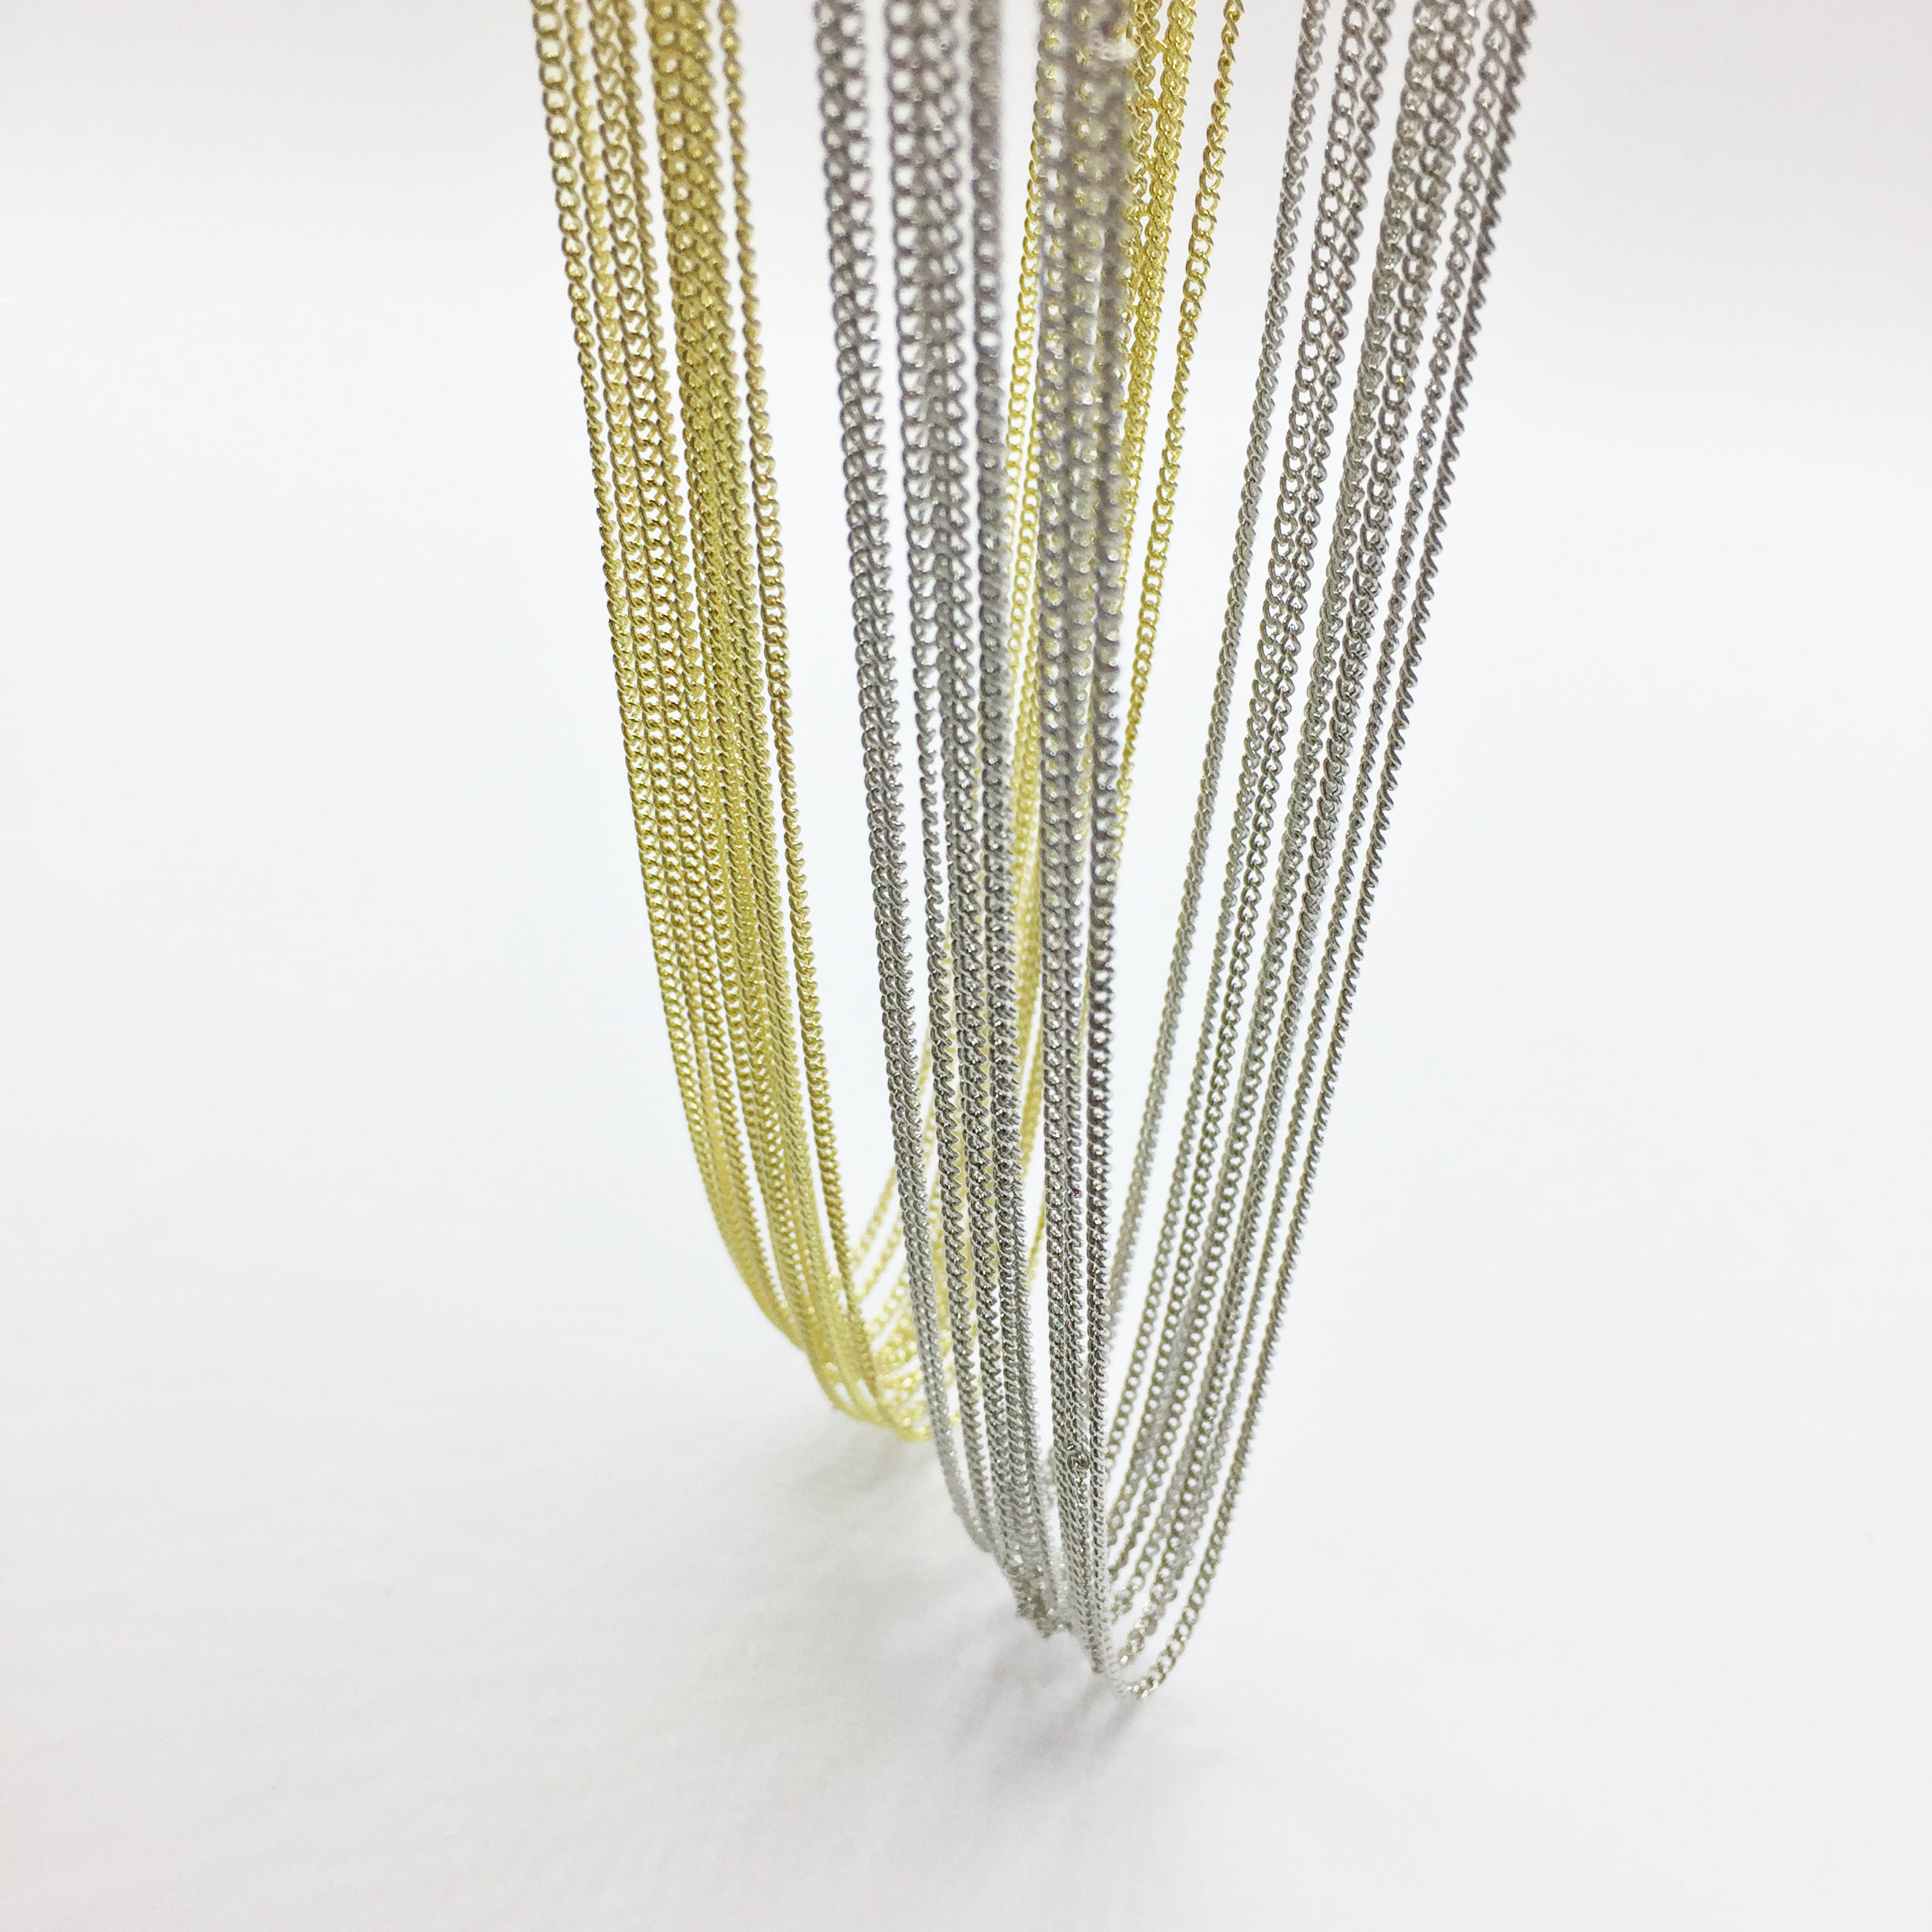 Eruifa 10pcs 45cm Twisted Tiny Chain With 6cm Ext Chain Jewelry Link DIY Finding  Necklace,2 Colors Nickle Free And Lead Free